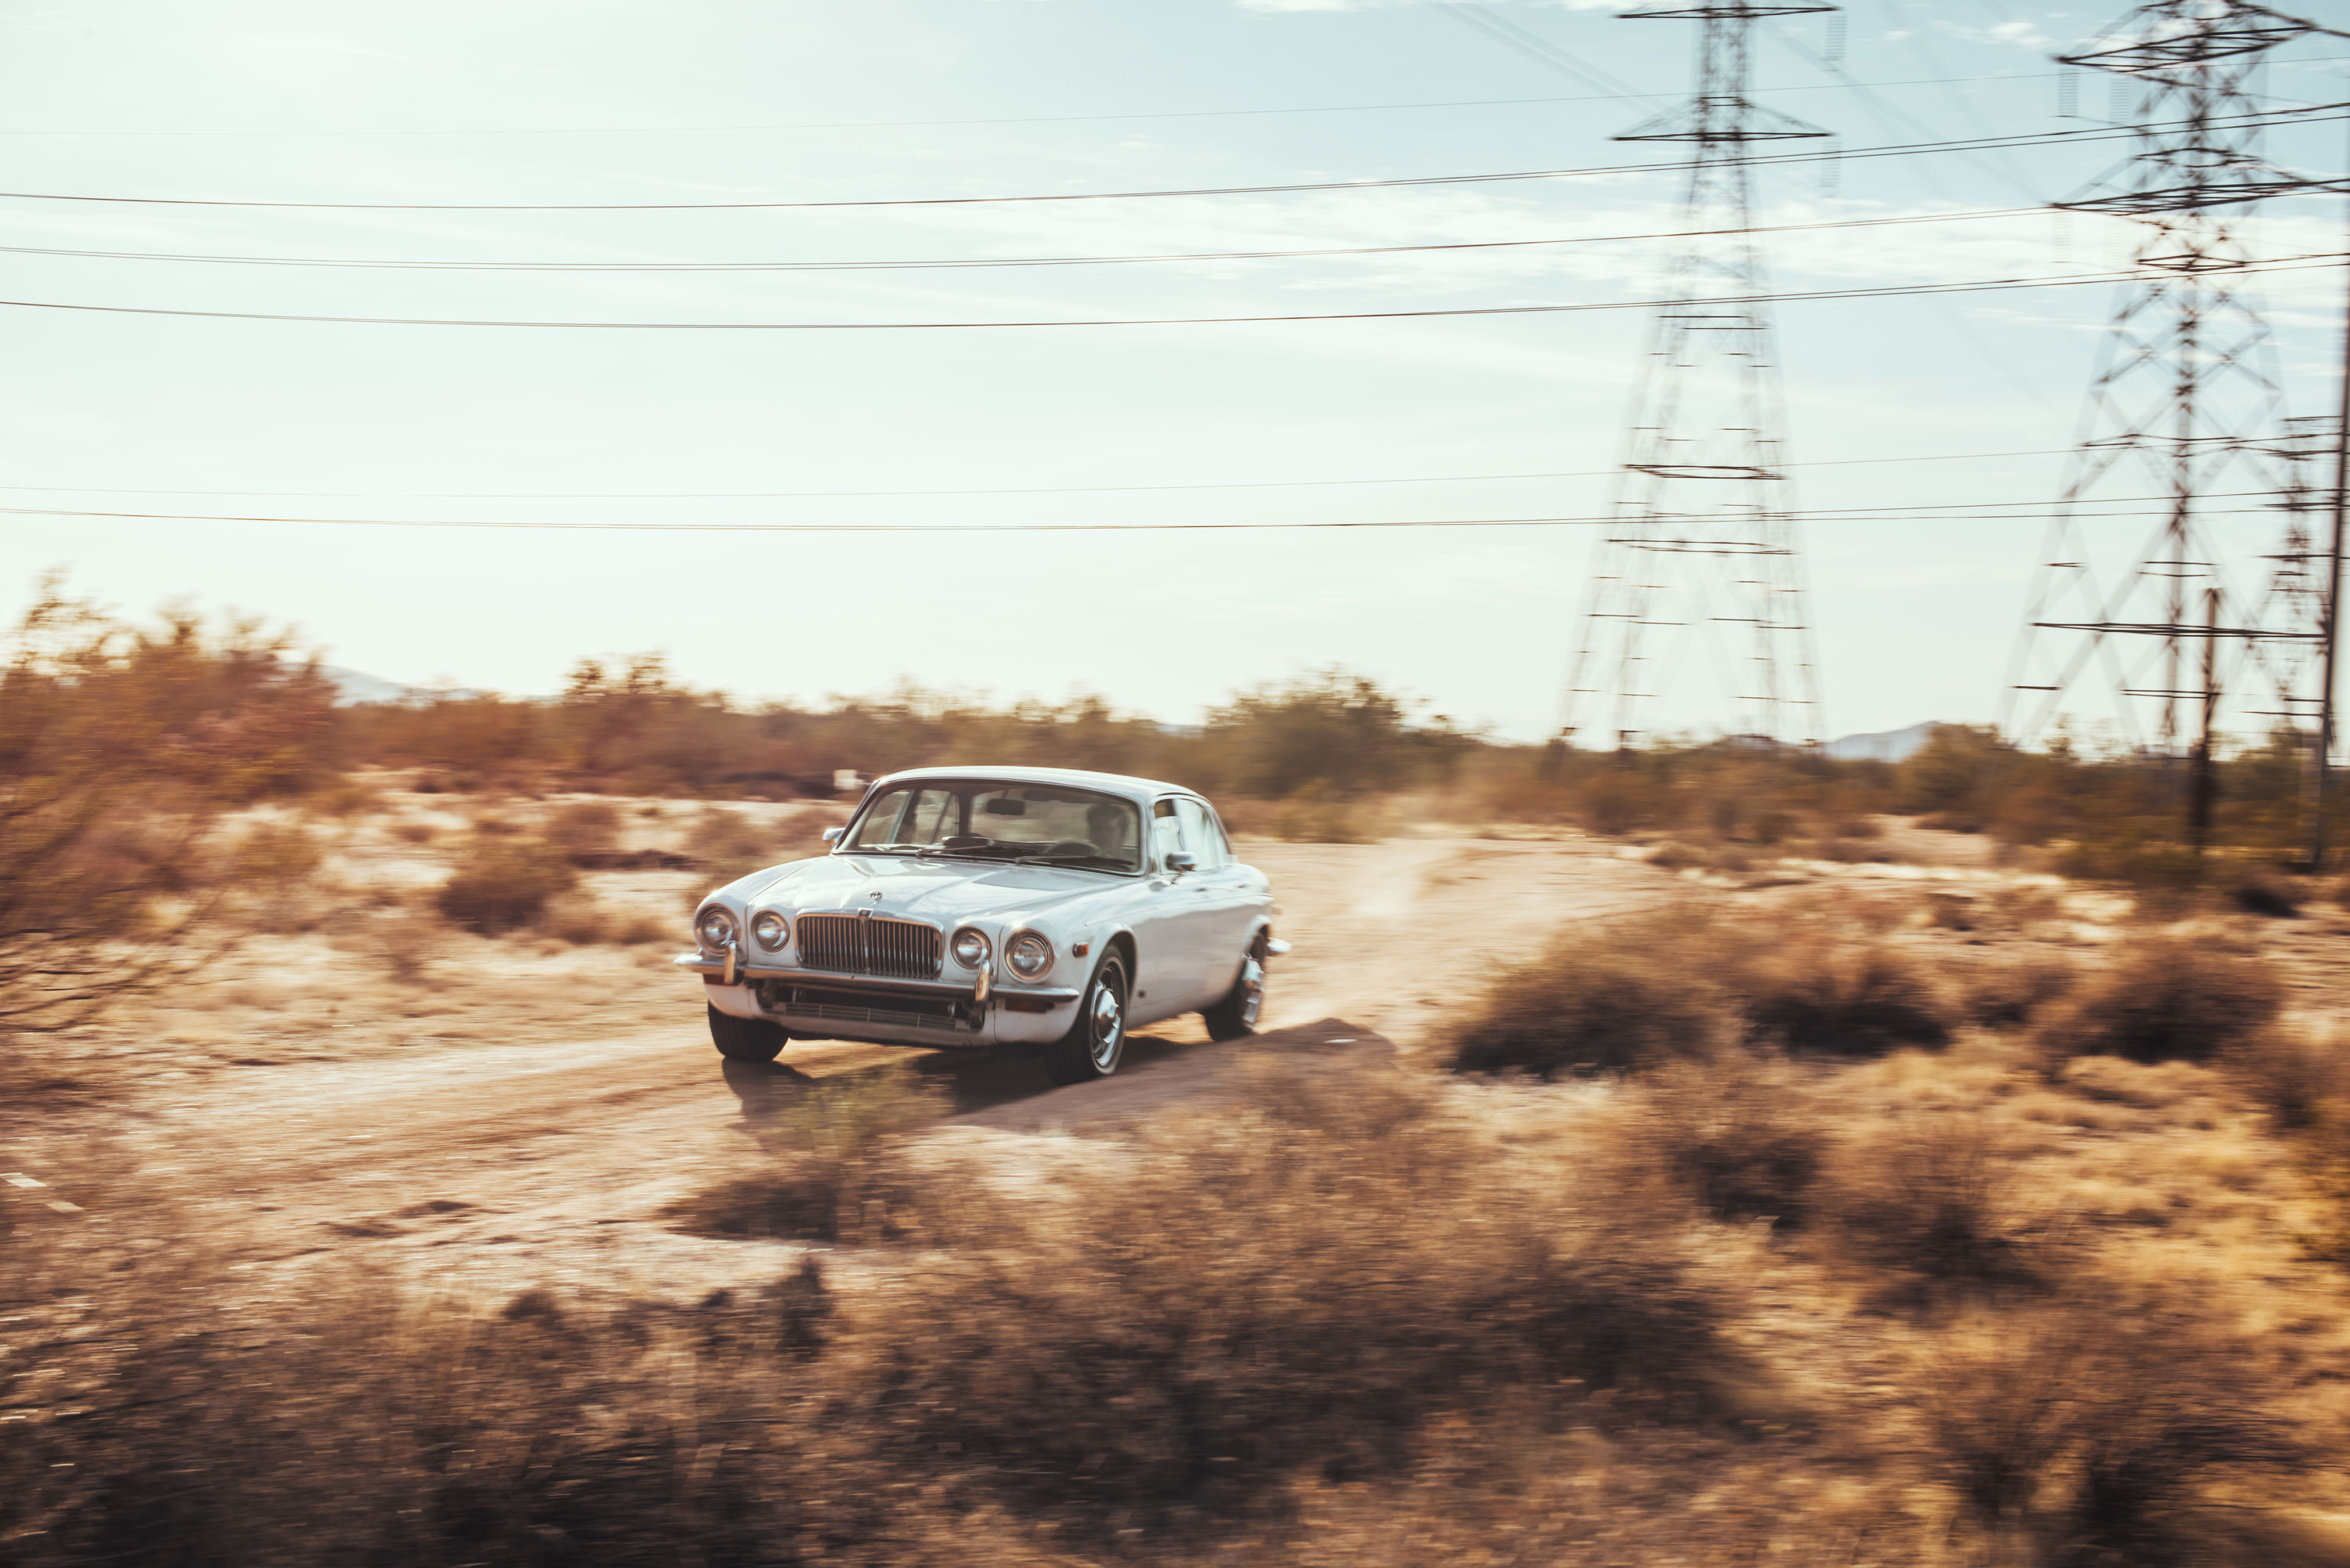 1974 Jaguar XJ6 driving towards the camera